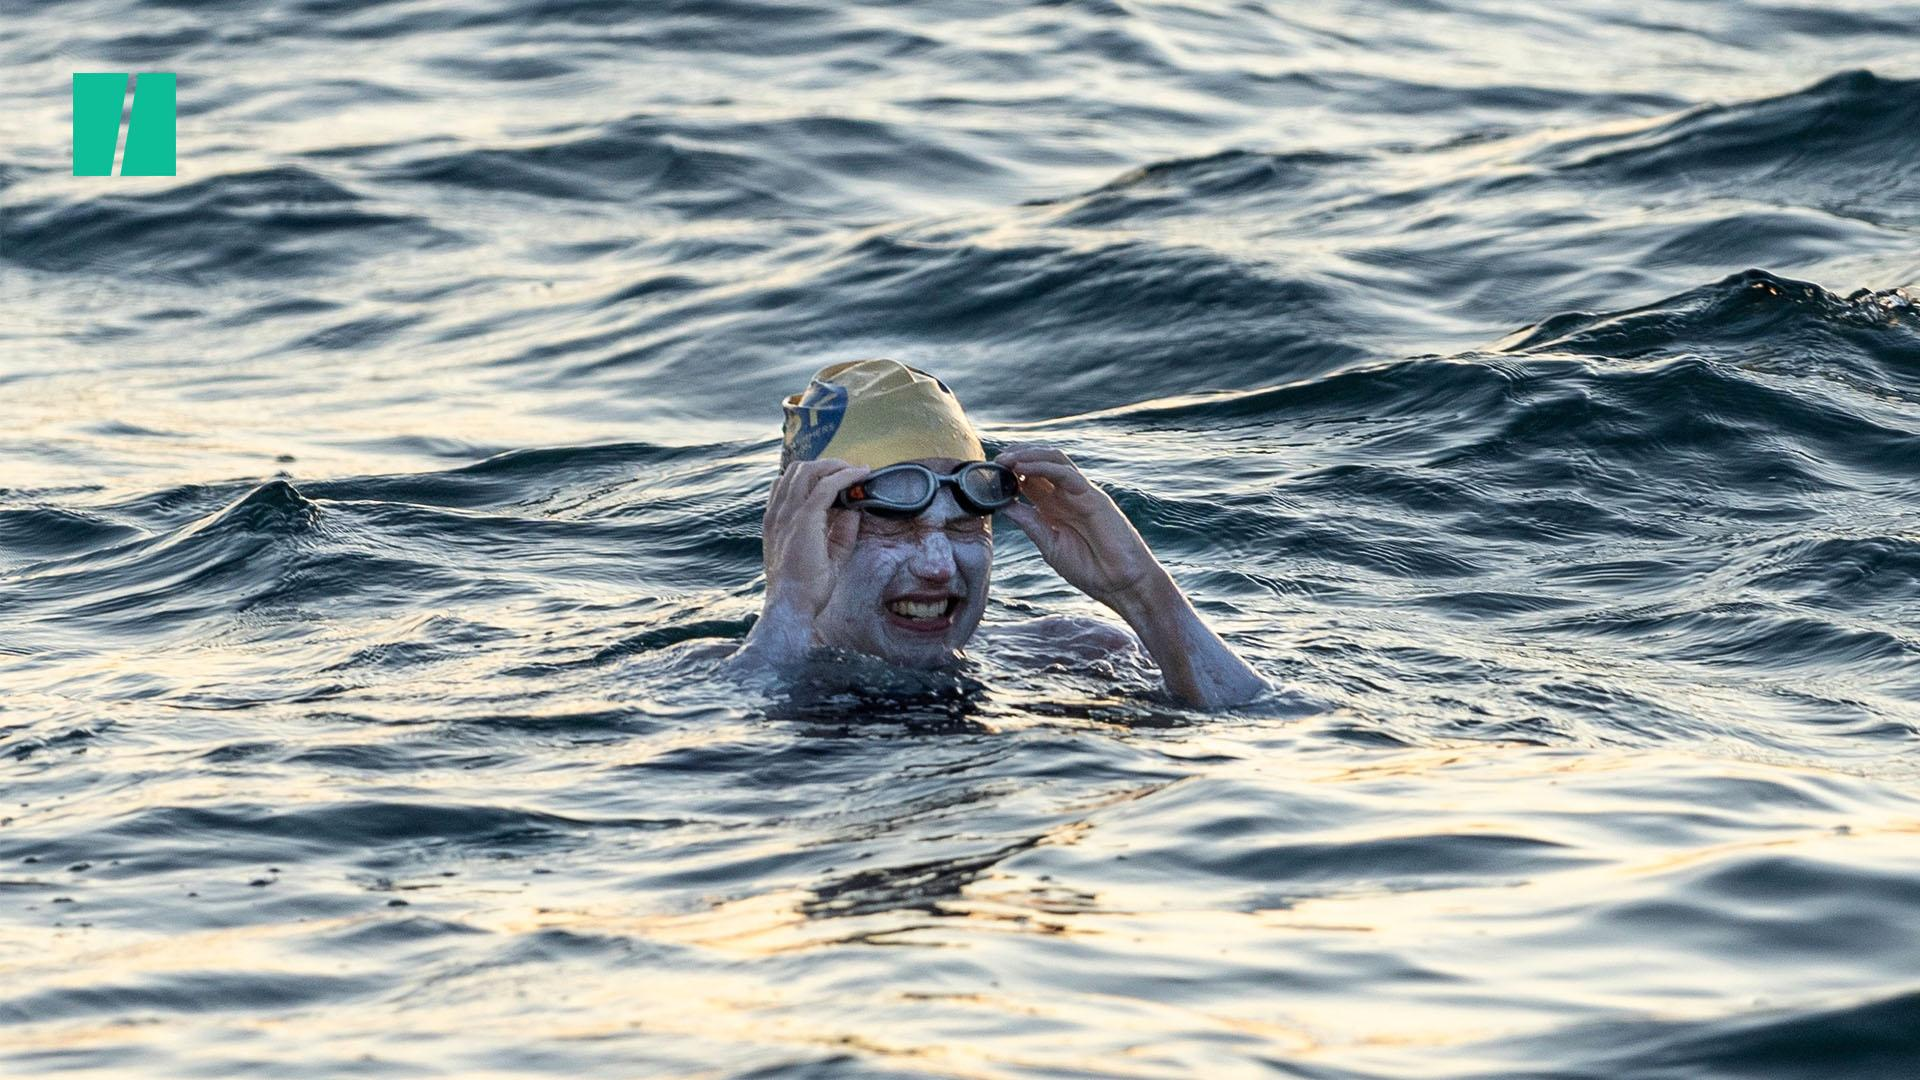 Sarah Thomas Becomes First Person To Swim Across The English Channel Four Times Without Stopping